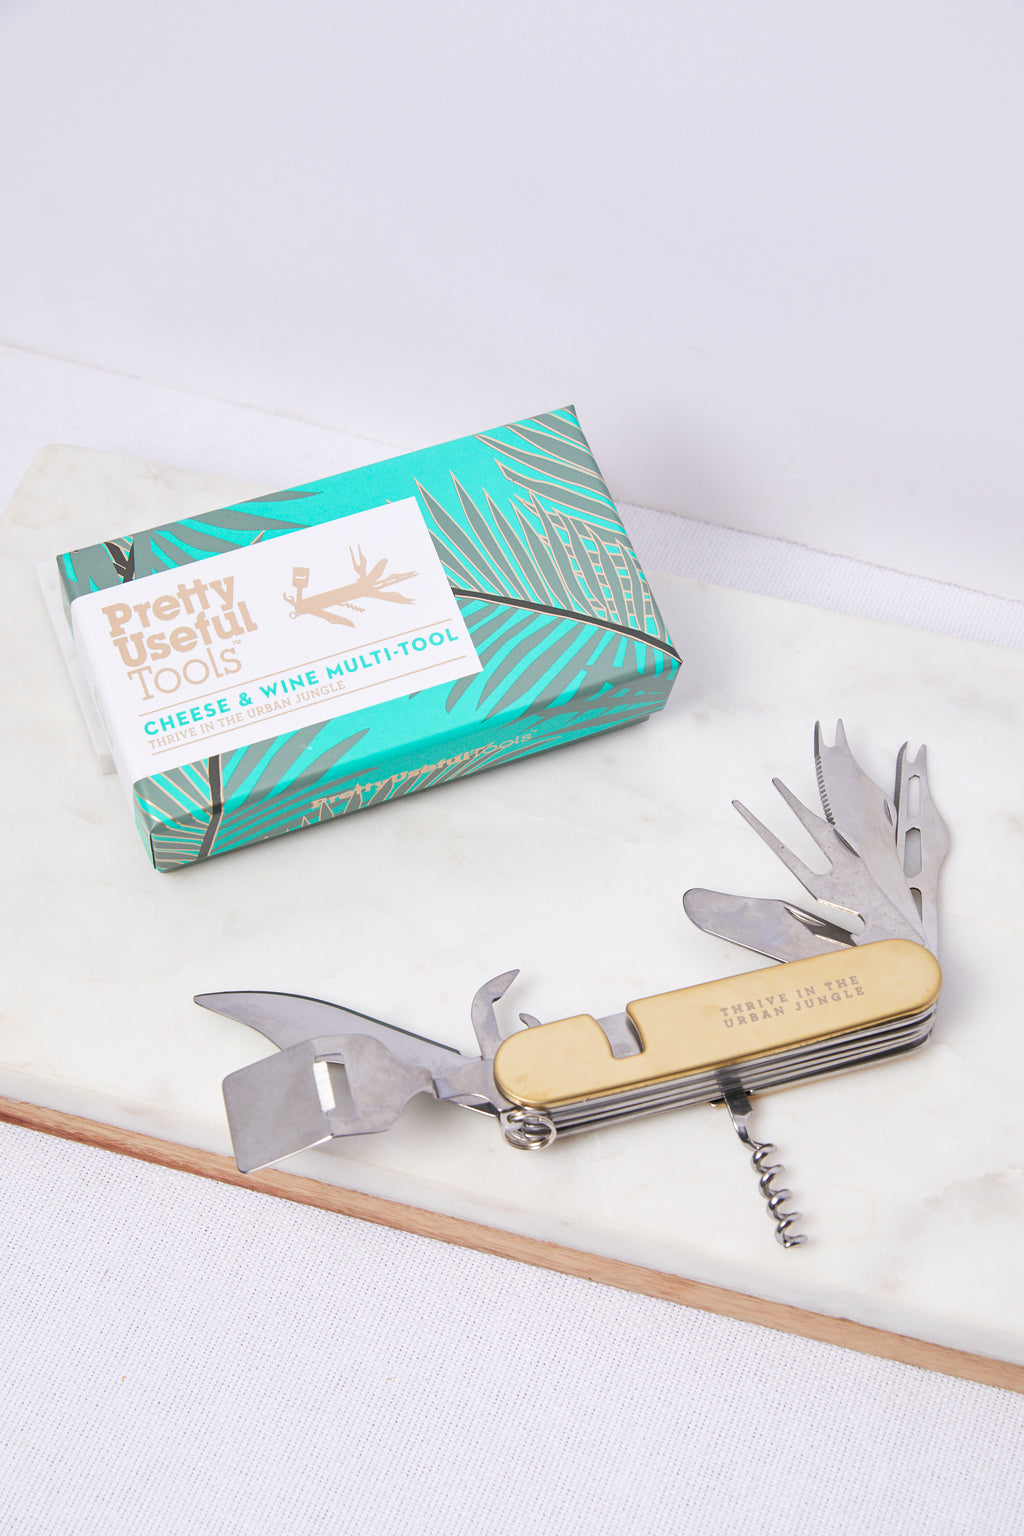 Pretty Useful Cheese & Wine Multi Tool - picnic-sf